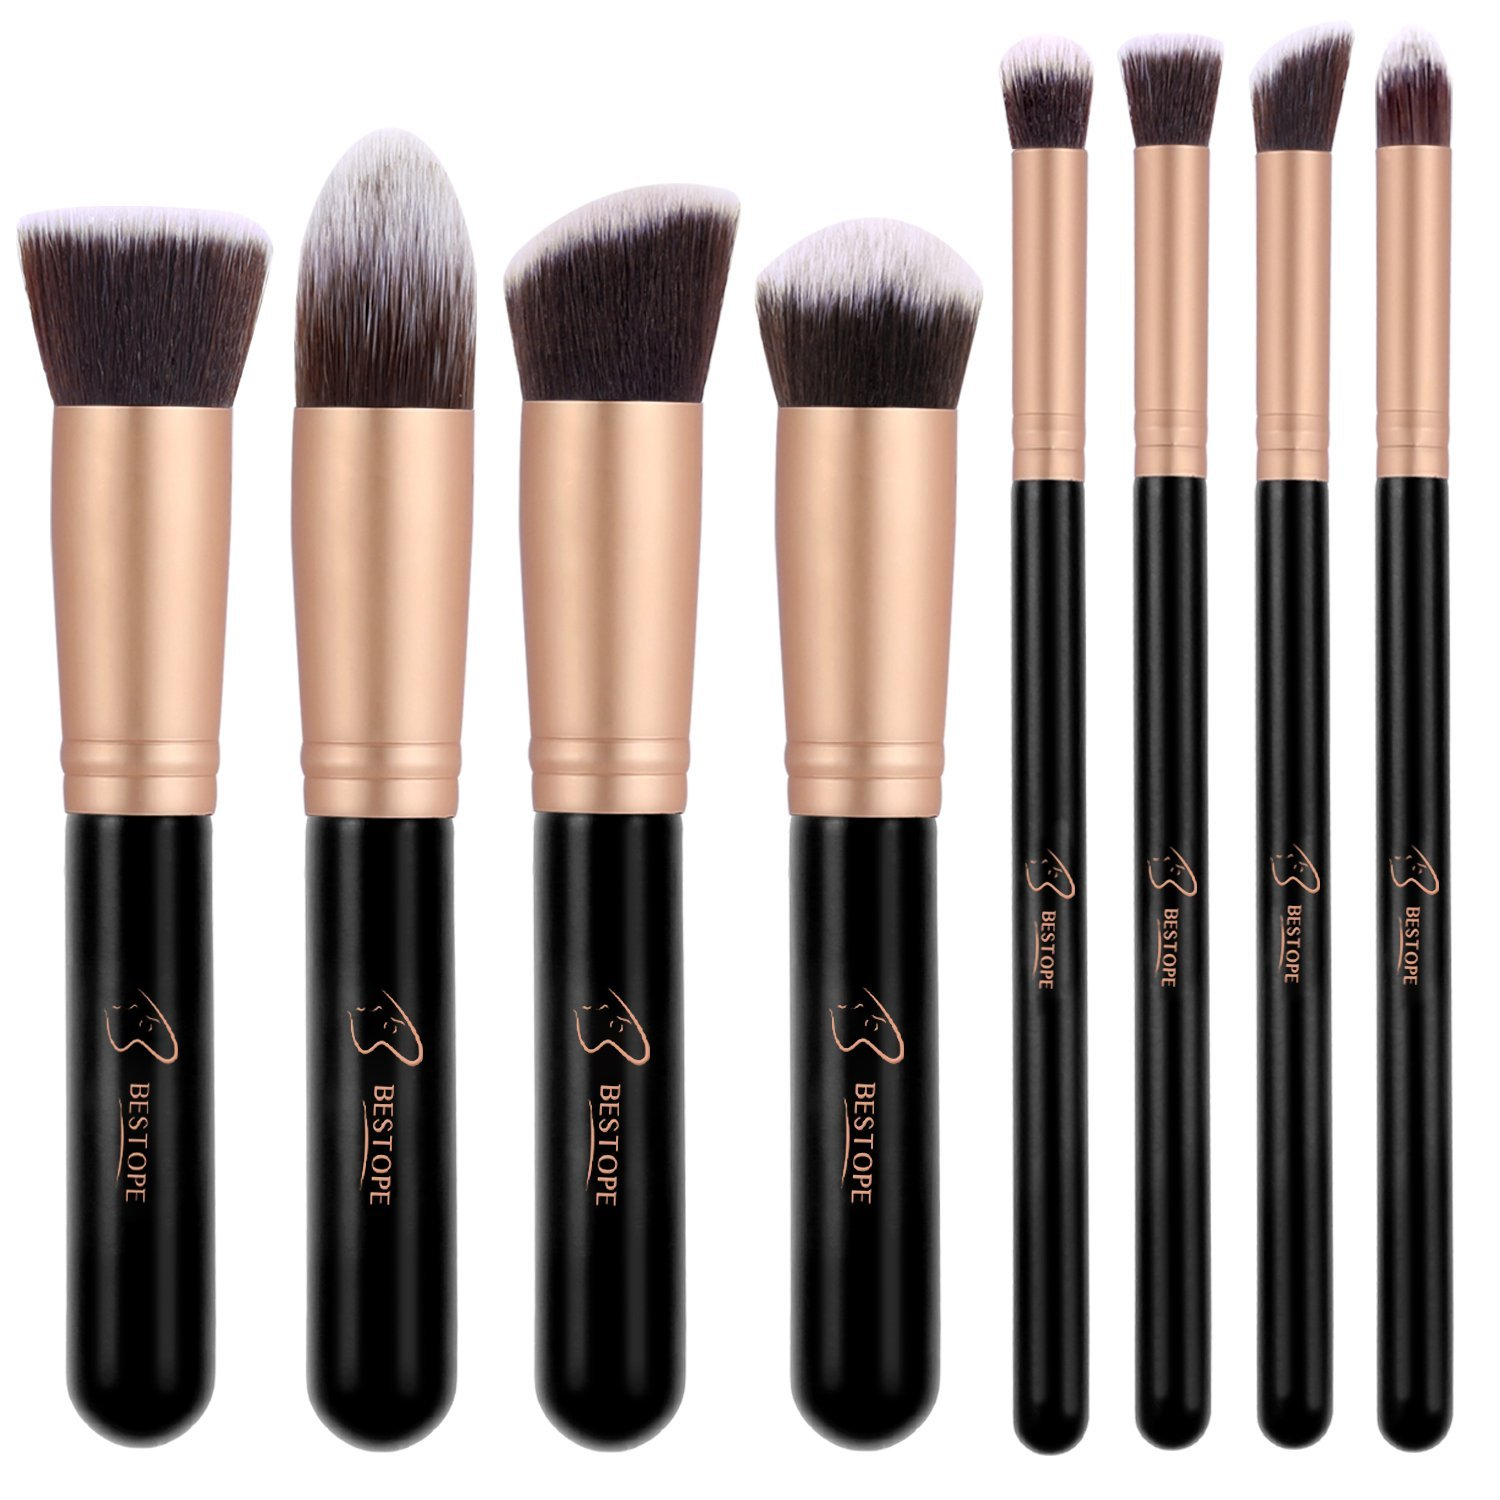 Amazon.com: Makeup Brushes BESTOPE Premium Cosmetic Makeup Brush Set Synthetic Kabuki Makeup Foundation Eyeliner Blush Contour Brushes for Powder Cream Concealer Brush Kit(8PCs, Rose Gold): Beauty